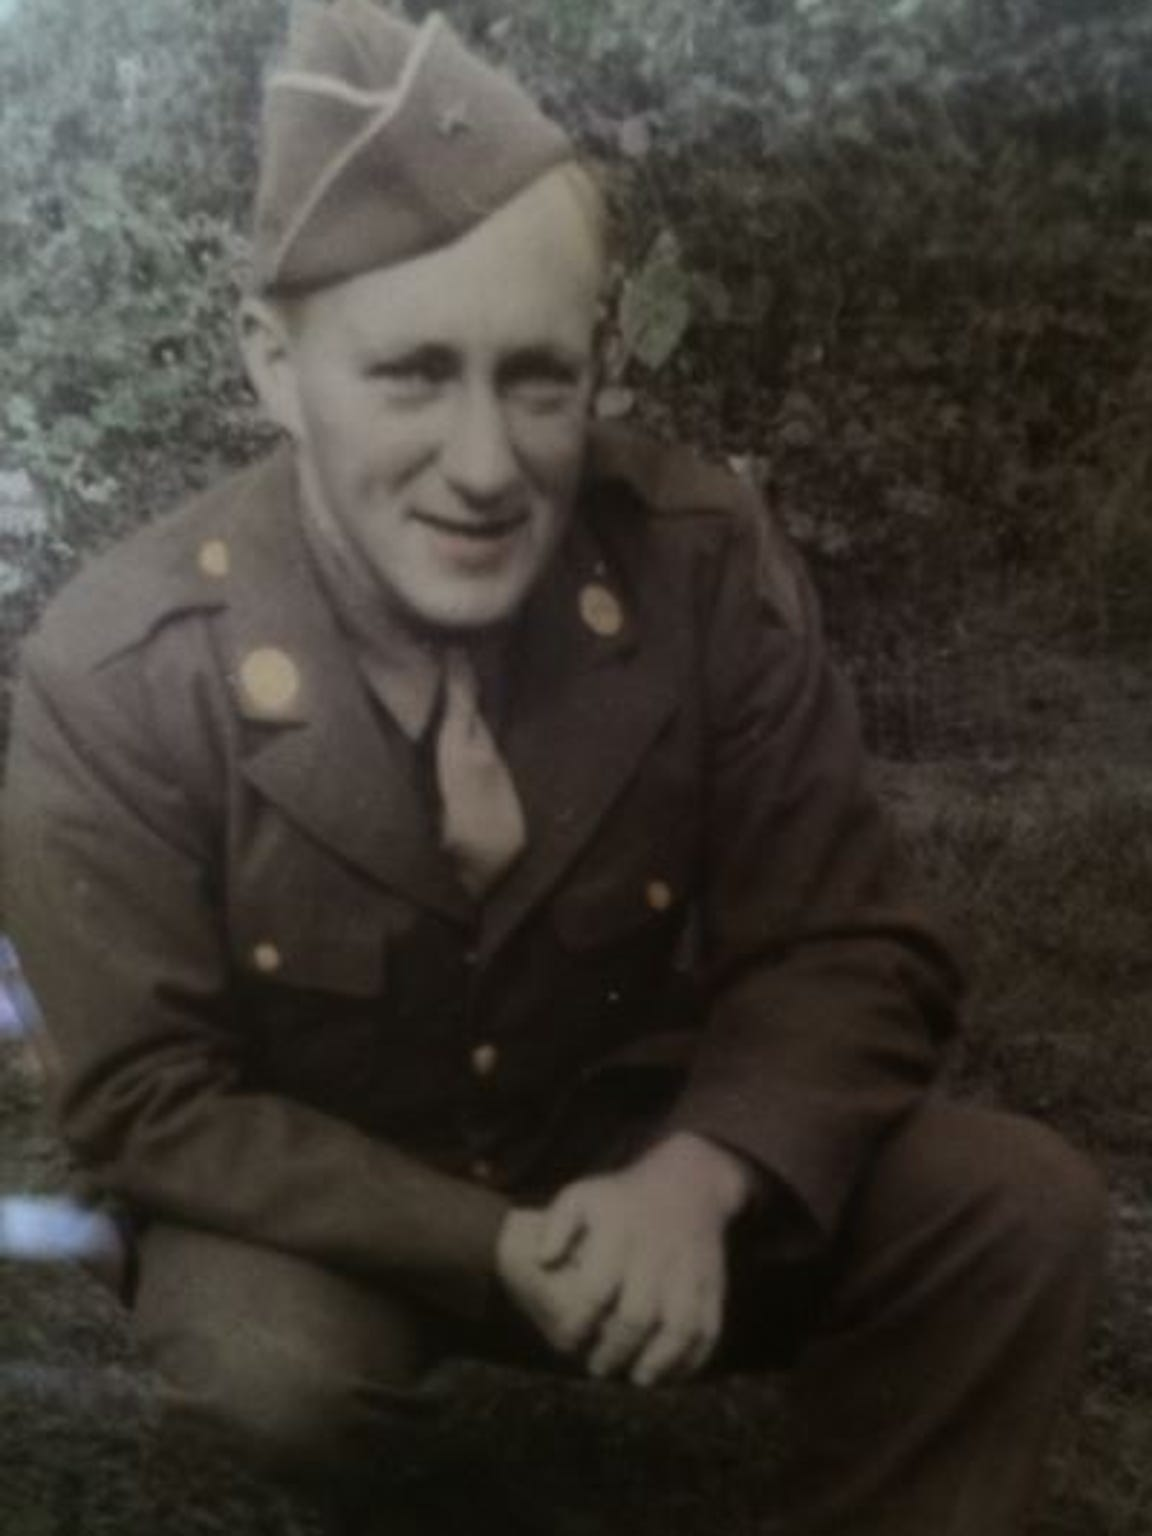 Wayne Clark likely posed for this snapshot in his uniform